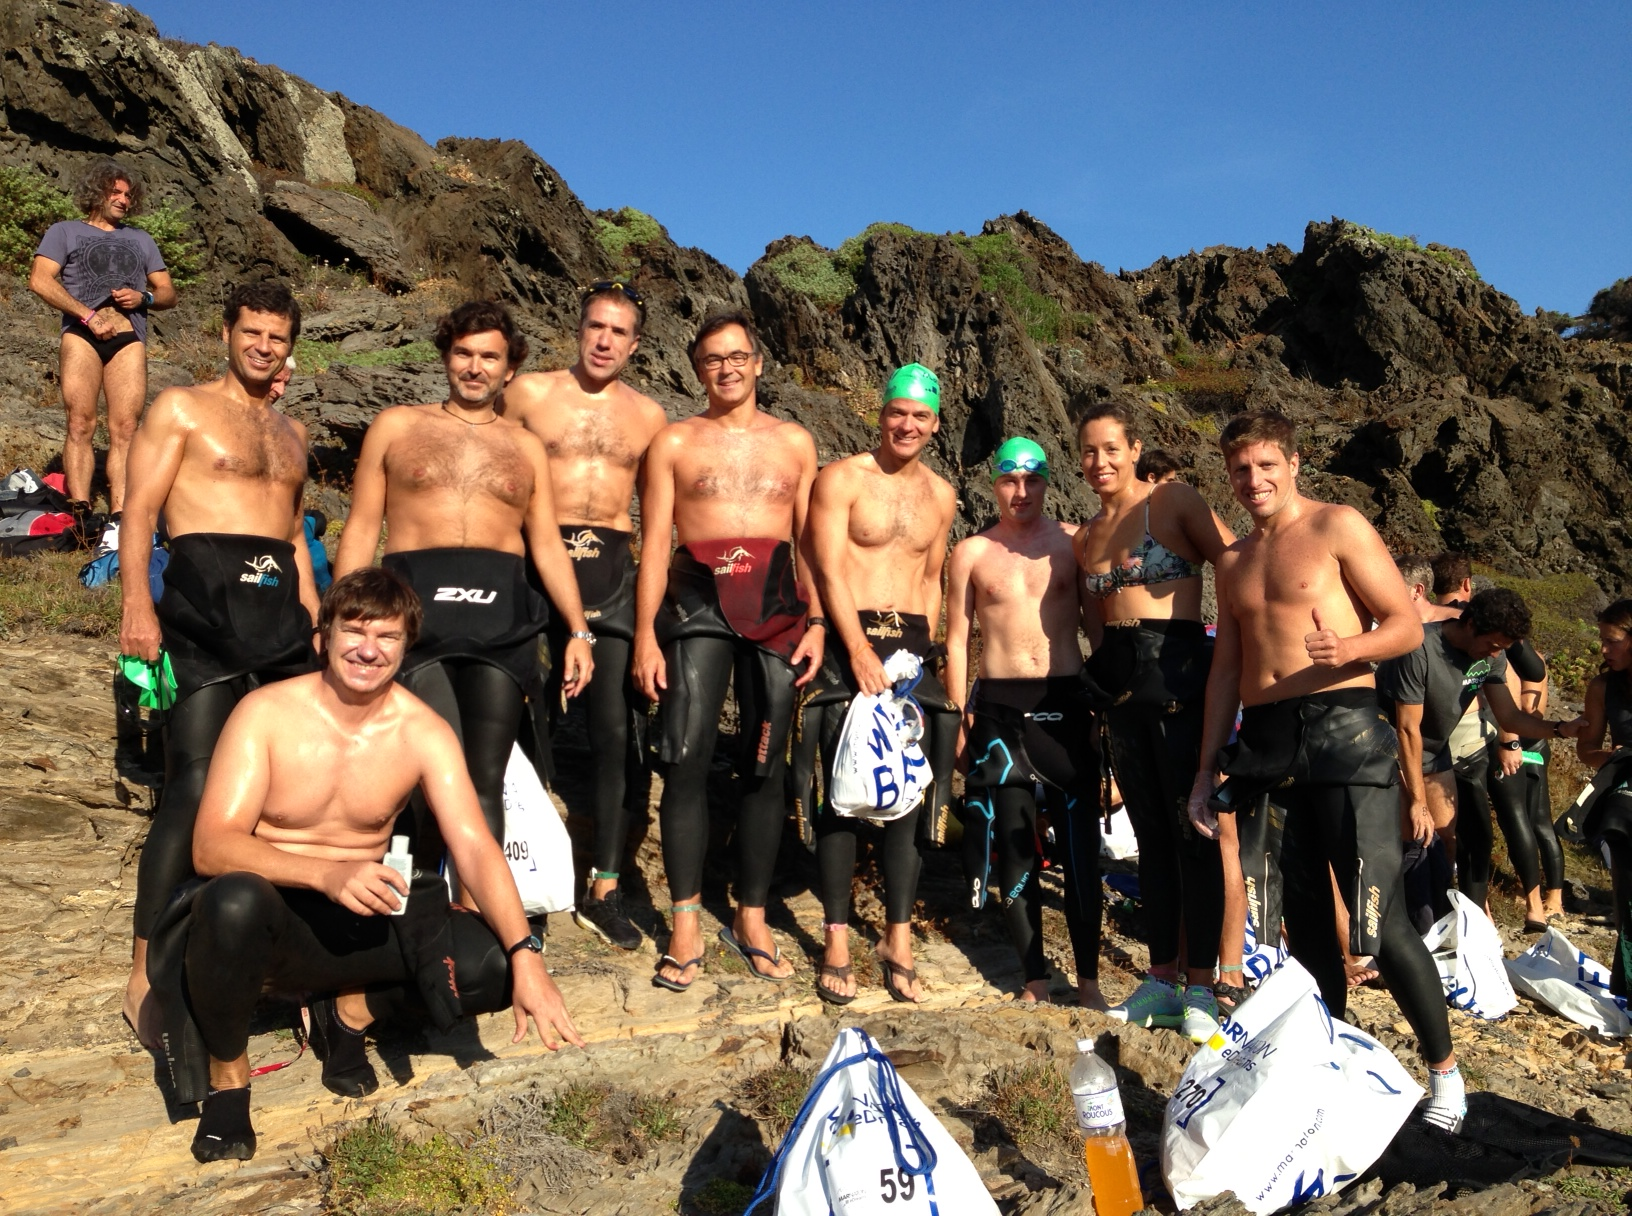 Edreams Compte Marnaton Edreams Cadaqués 38 Hours Of Swimming And Friends